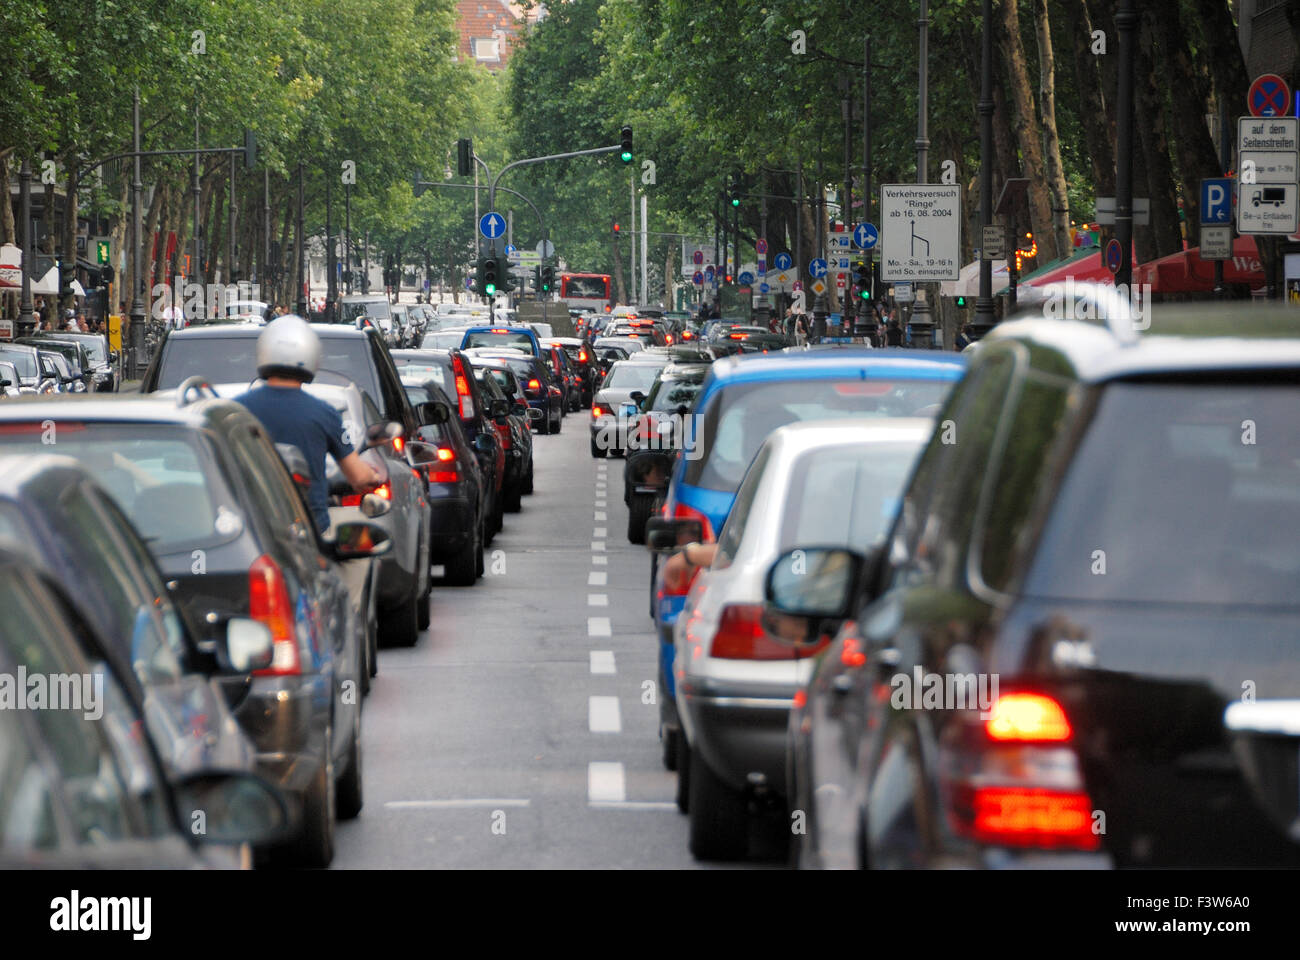 Congestion in the city Stock Photo